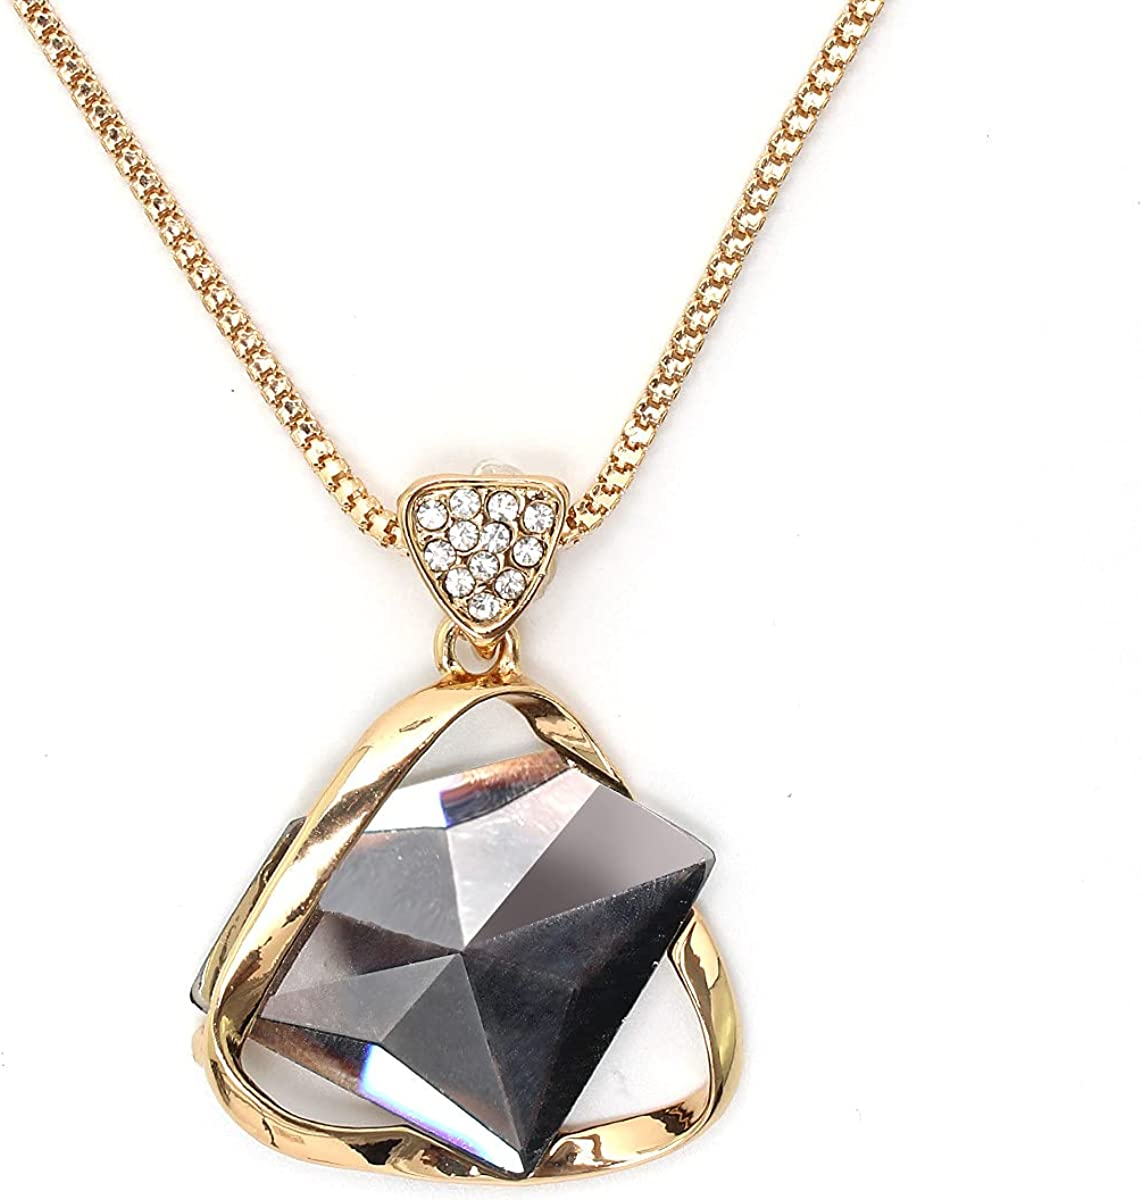 Merdia Long Chain Necklace for Women Sweater Necklace Triangle Pendant Elegant Jewelry Accessories Dressy Collocation Evening Party Wedding